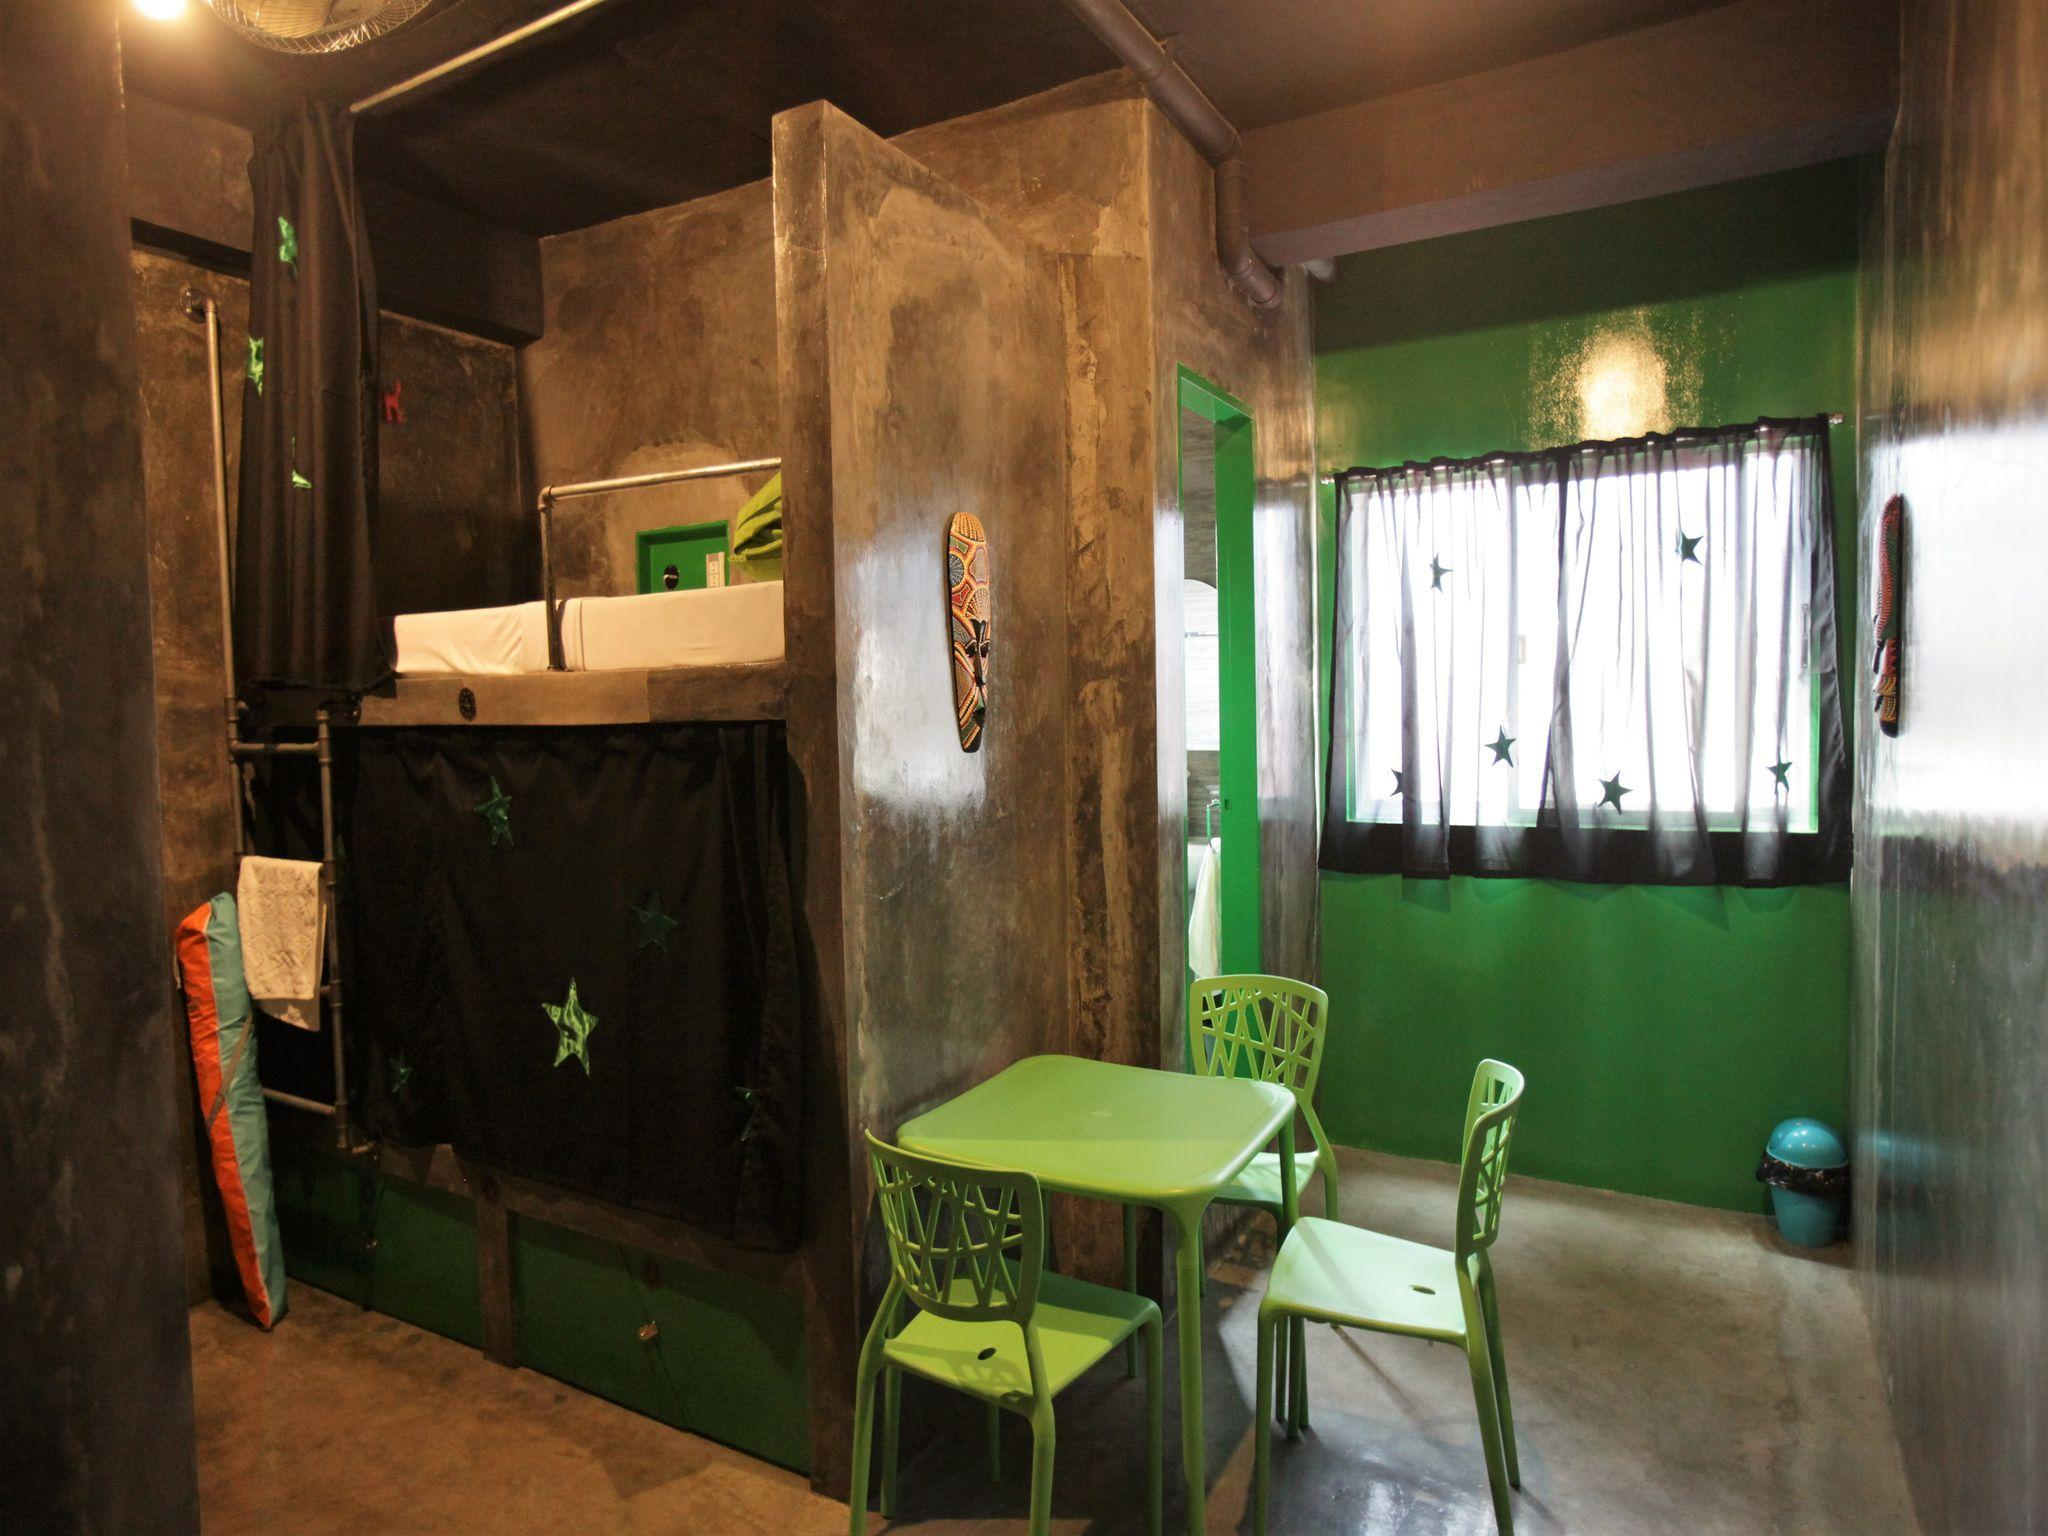 1 Bed in 4-Bed Dormitory with Private Bathroom (Mixed)